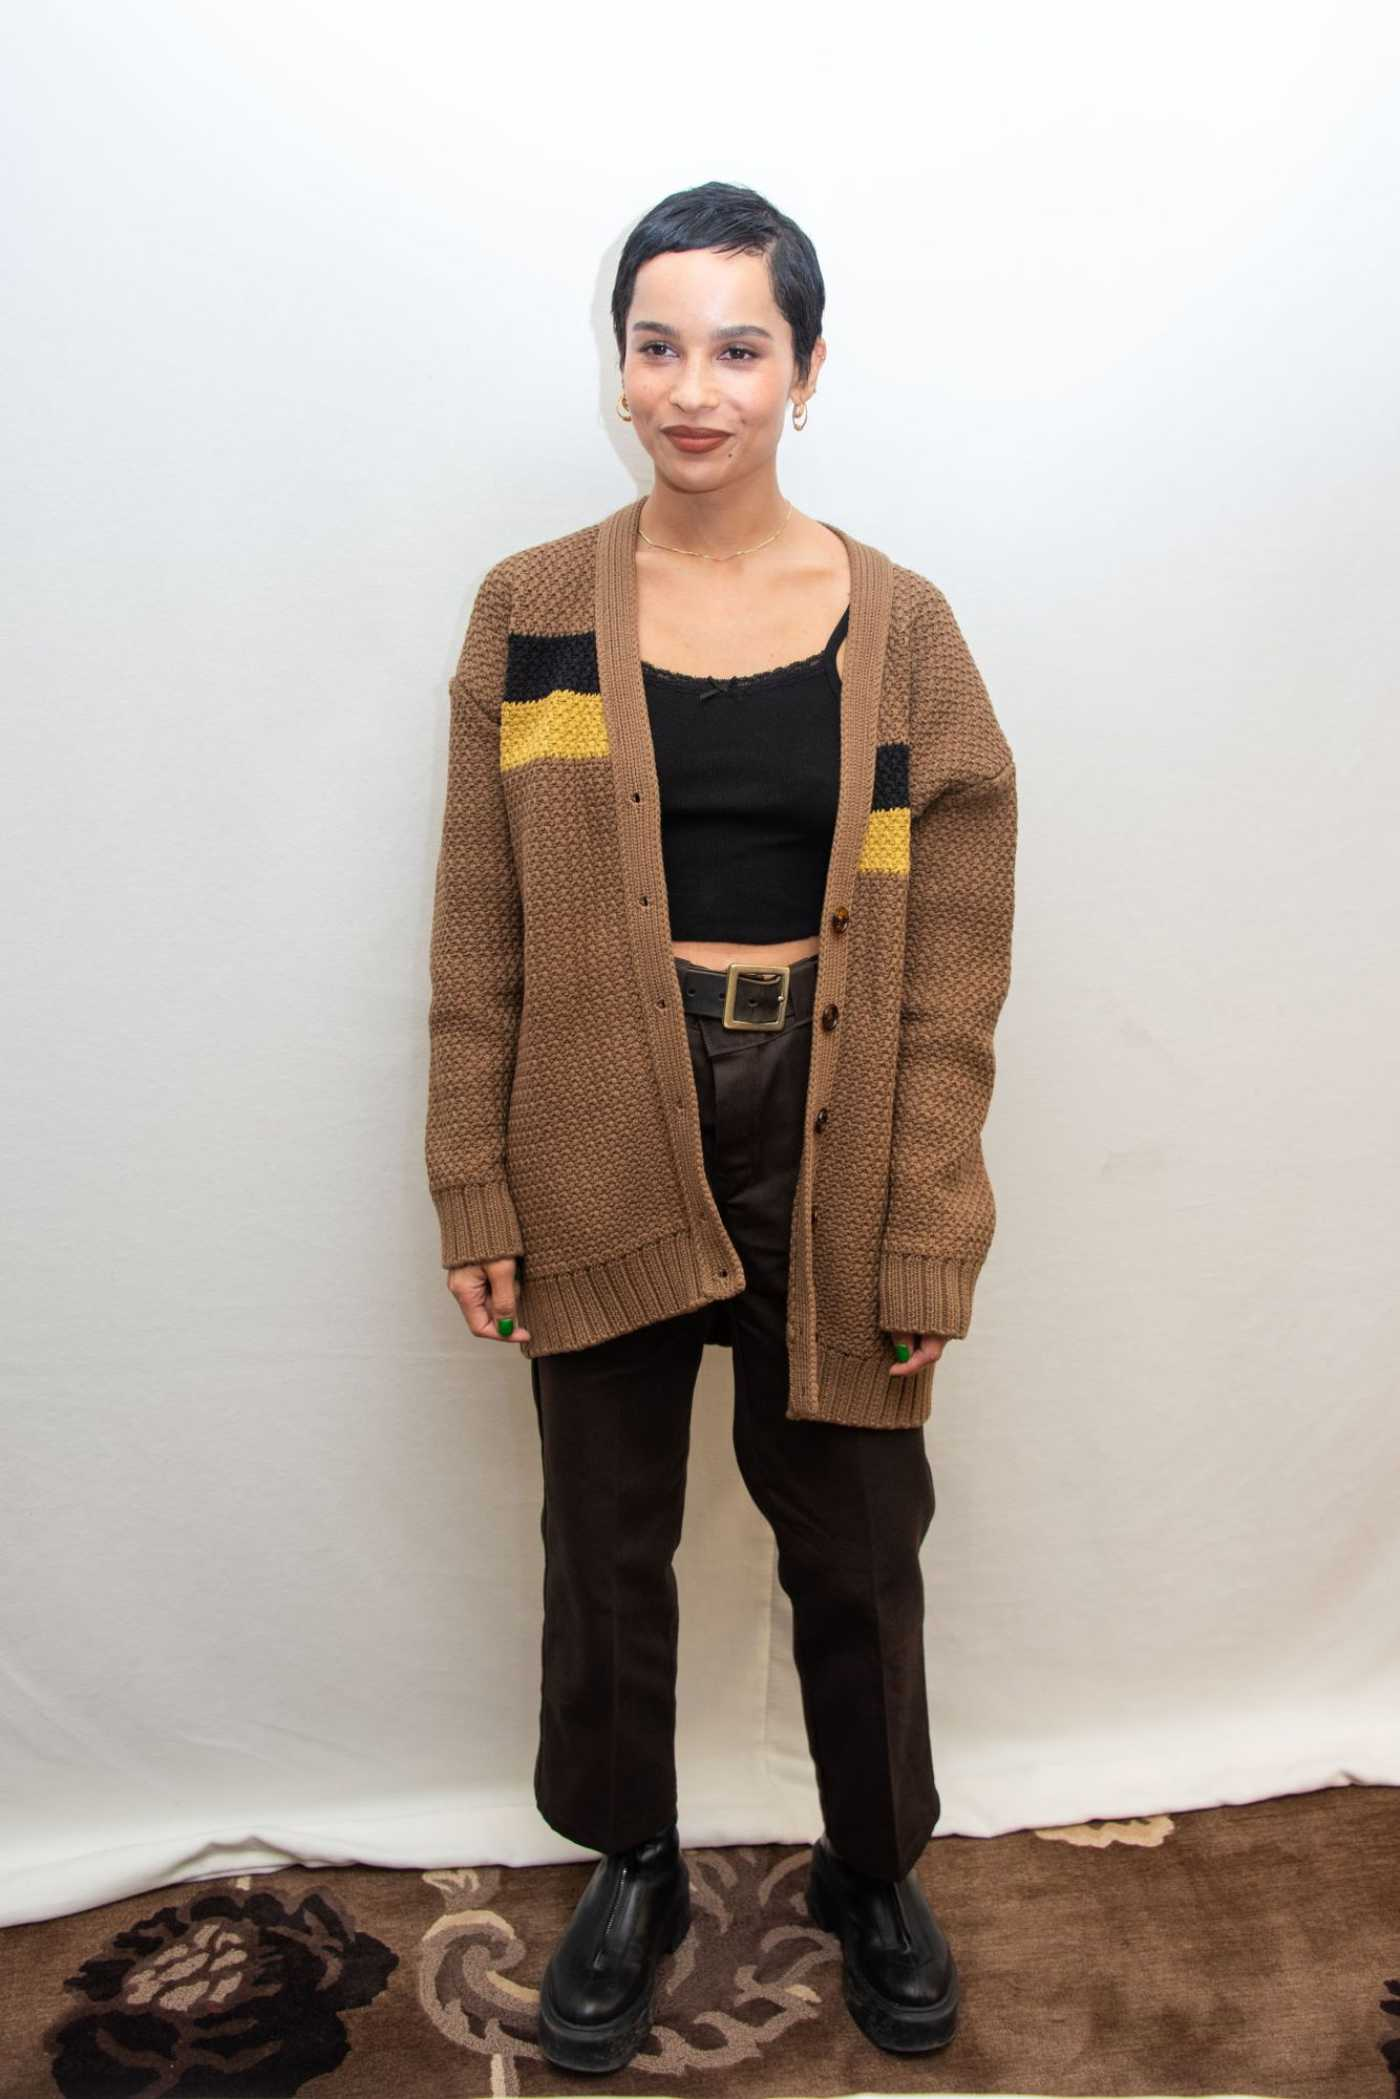 Zoe Kravitz Attends the High Fidelity Press Conference in Beverly Hills 01/17/2020